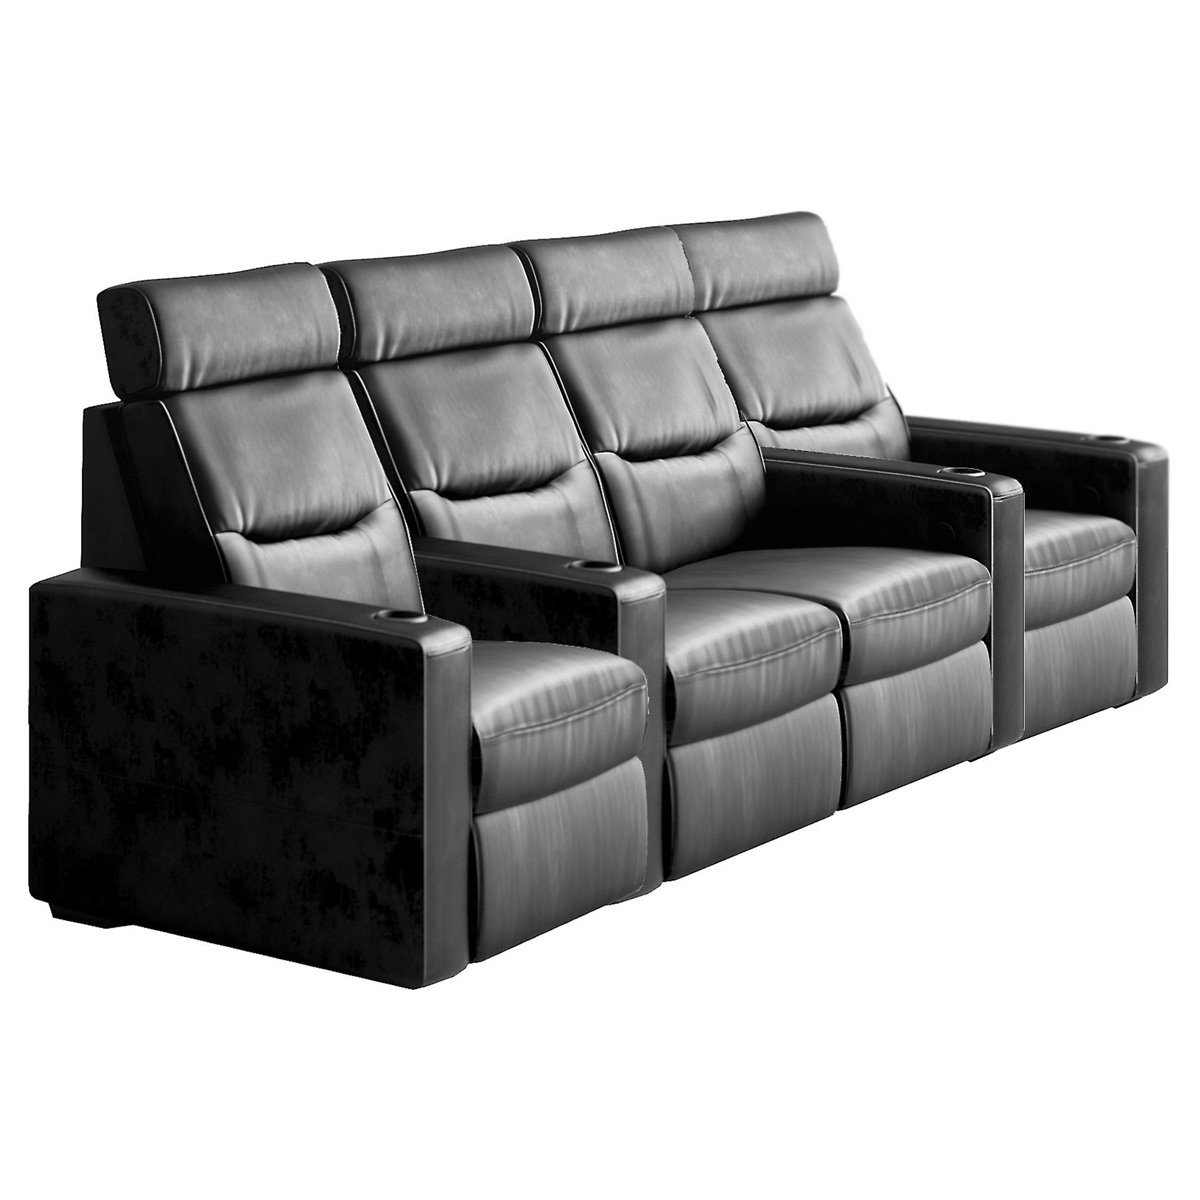 lighting cup recliner theater theatre led sharing tony home collection loveseat adjustable sidebar seating holders